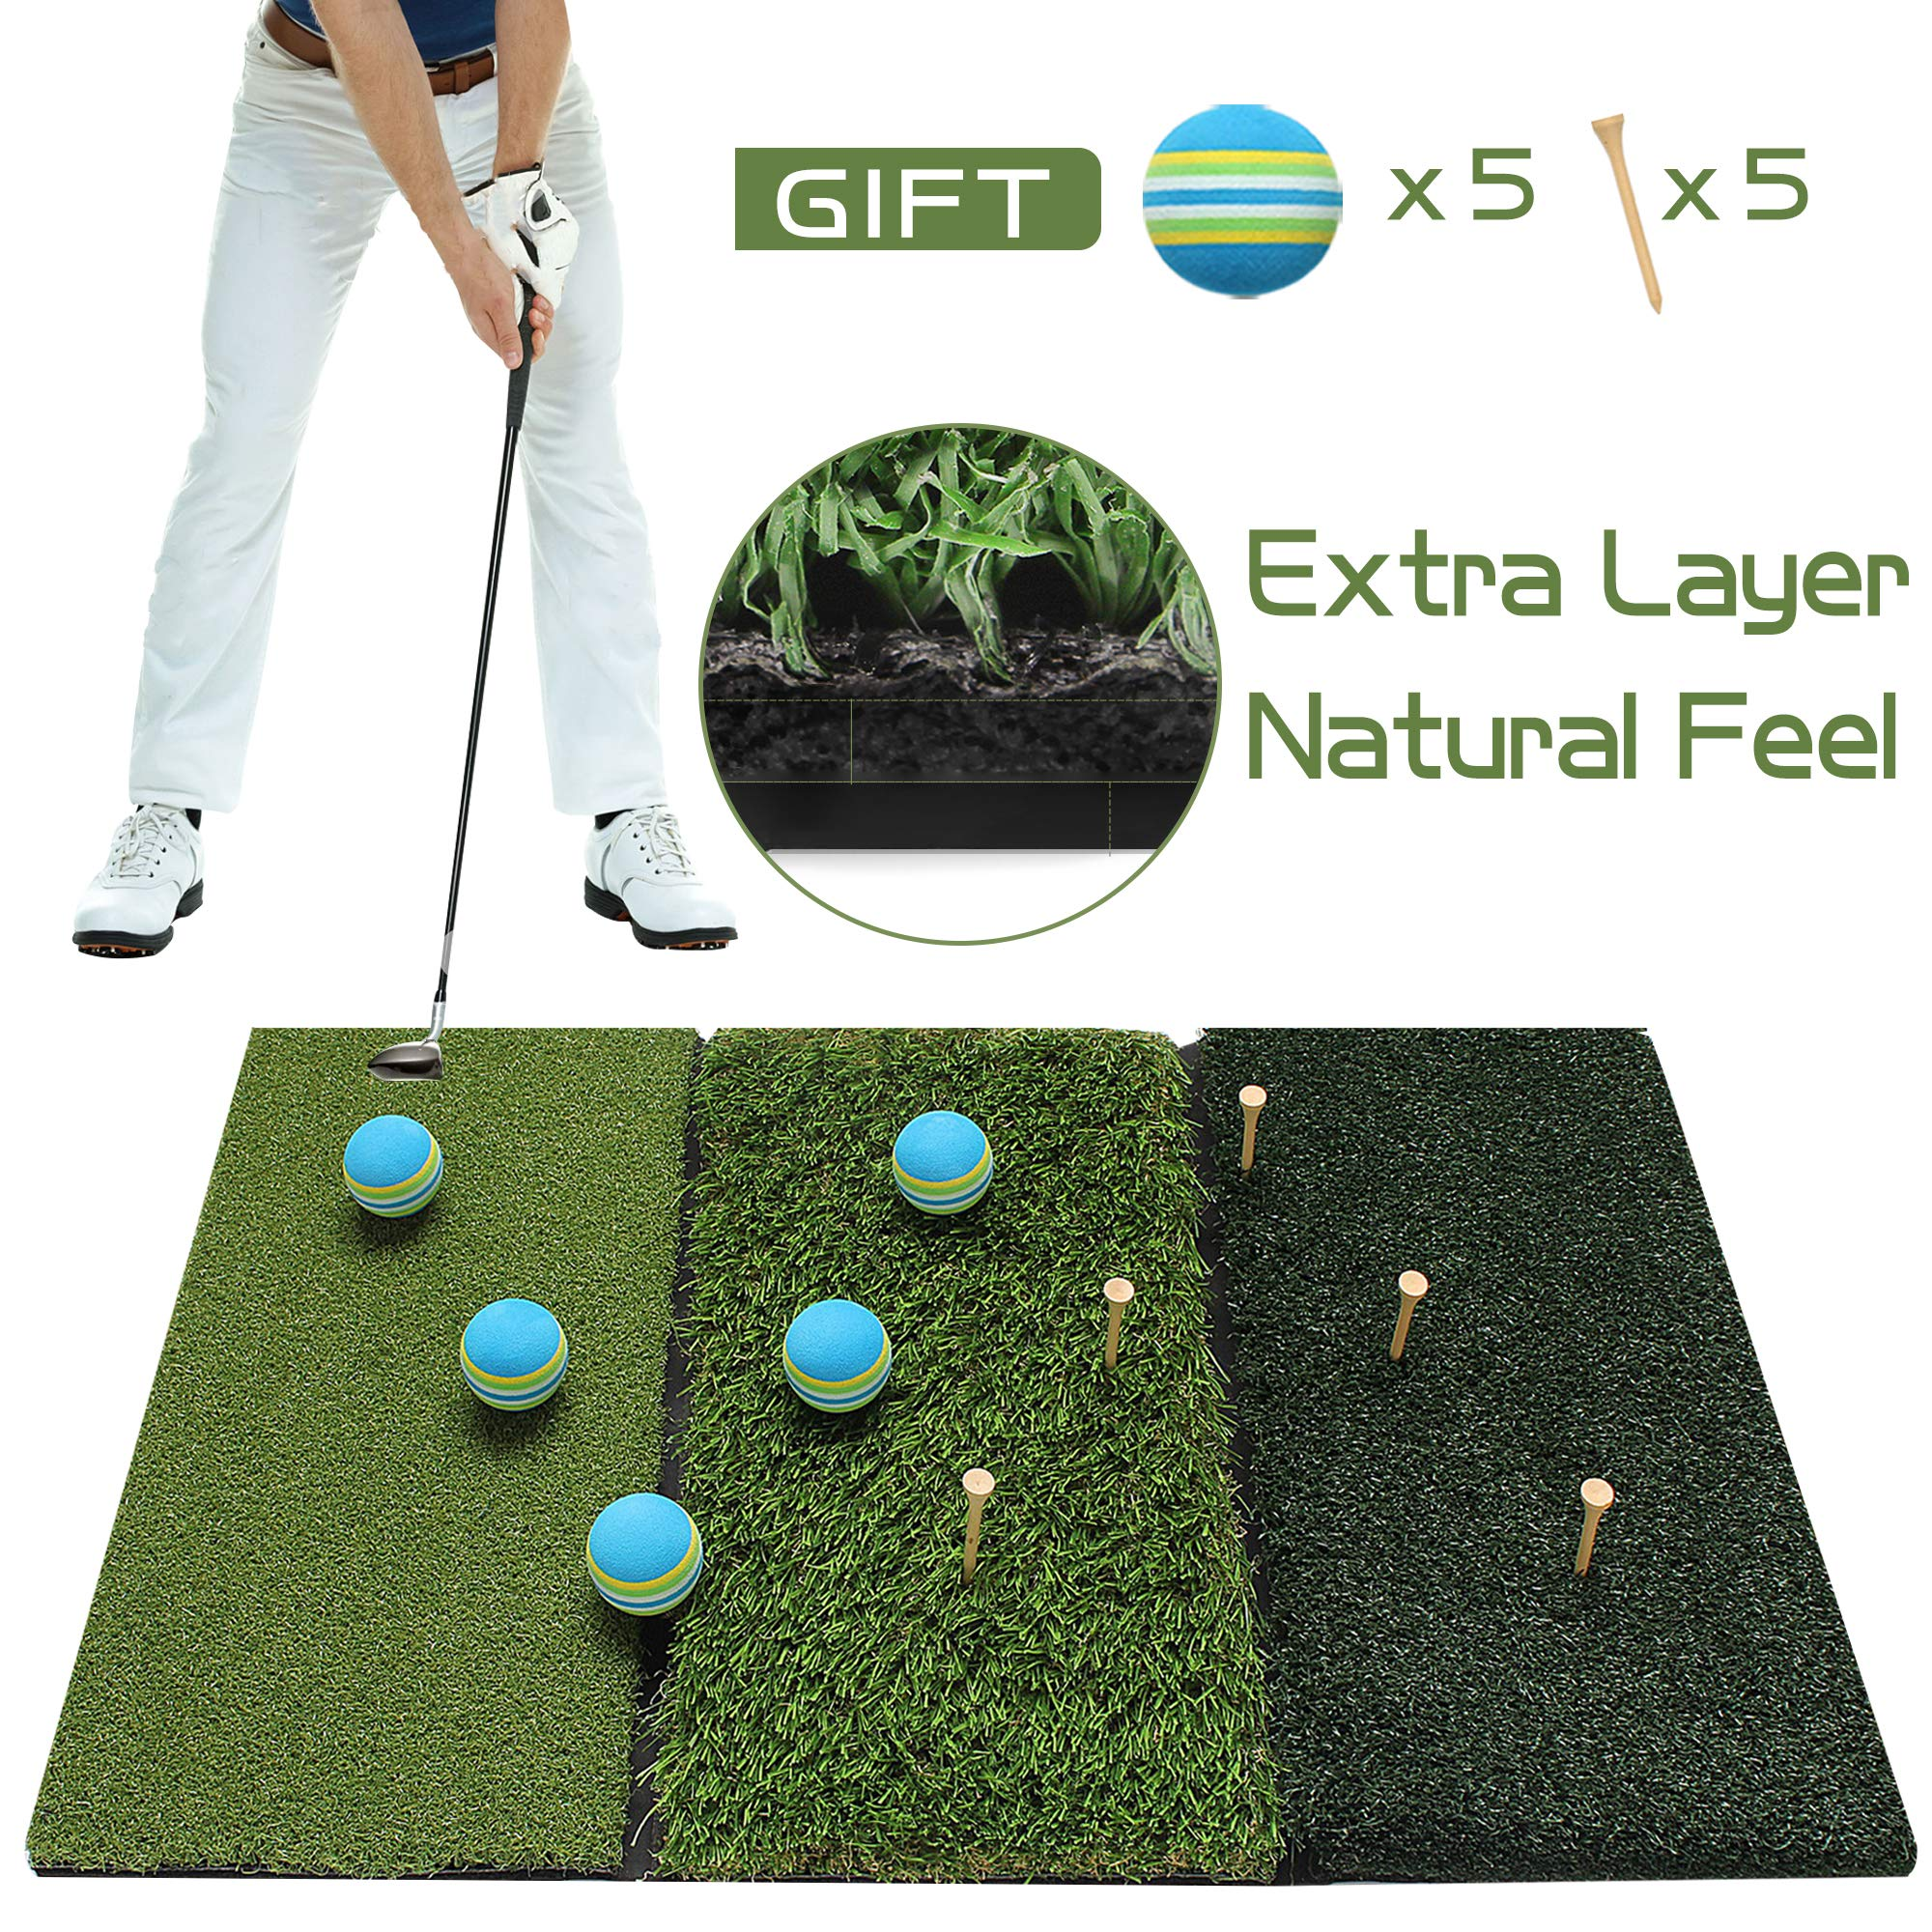 Running Raccoon Tri-Turf Golf Hitting Driving Mat, Practice Mat, Foldable Portable, Chipping Putting Green, Swing Trainer, Training Aids for Backyard Indoor & Outdoor Practice with Tees and Foam Balls by Running Raccoon